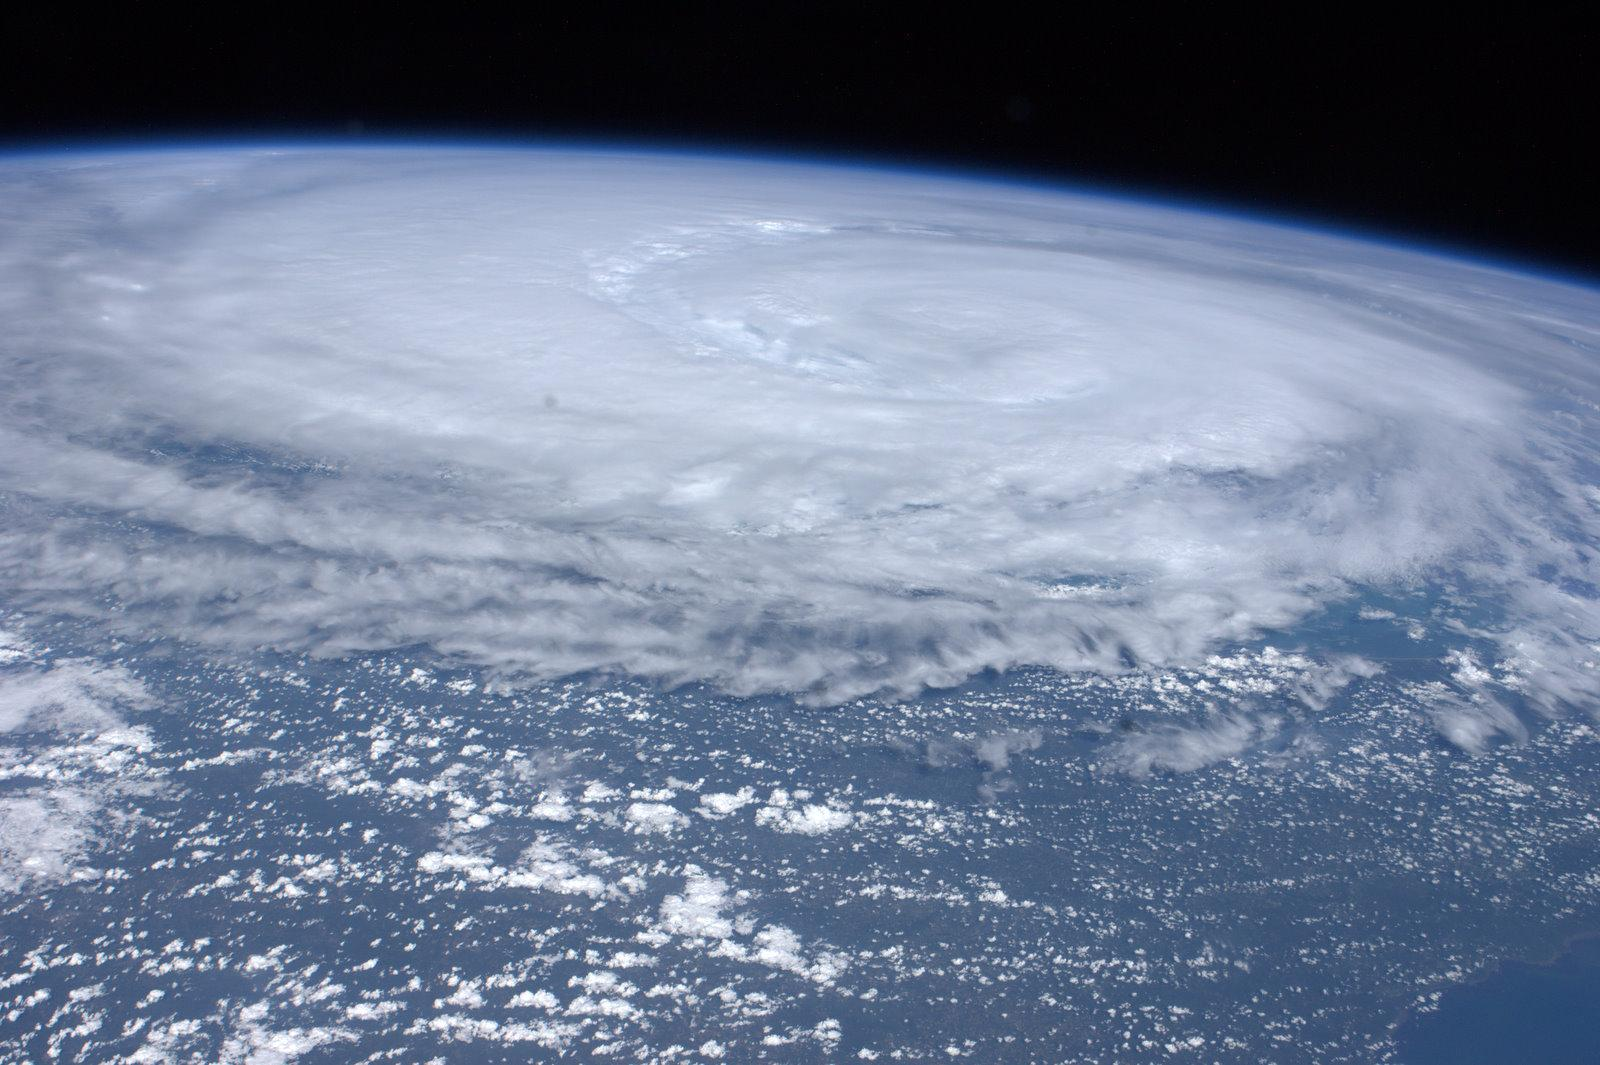 Hurricane Irene is seen from space from the International Space Station, as it churns off the east coast of the United States on August 26, 2011